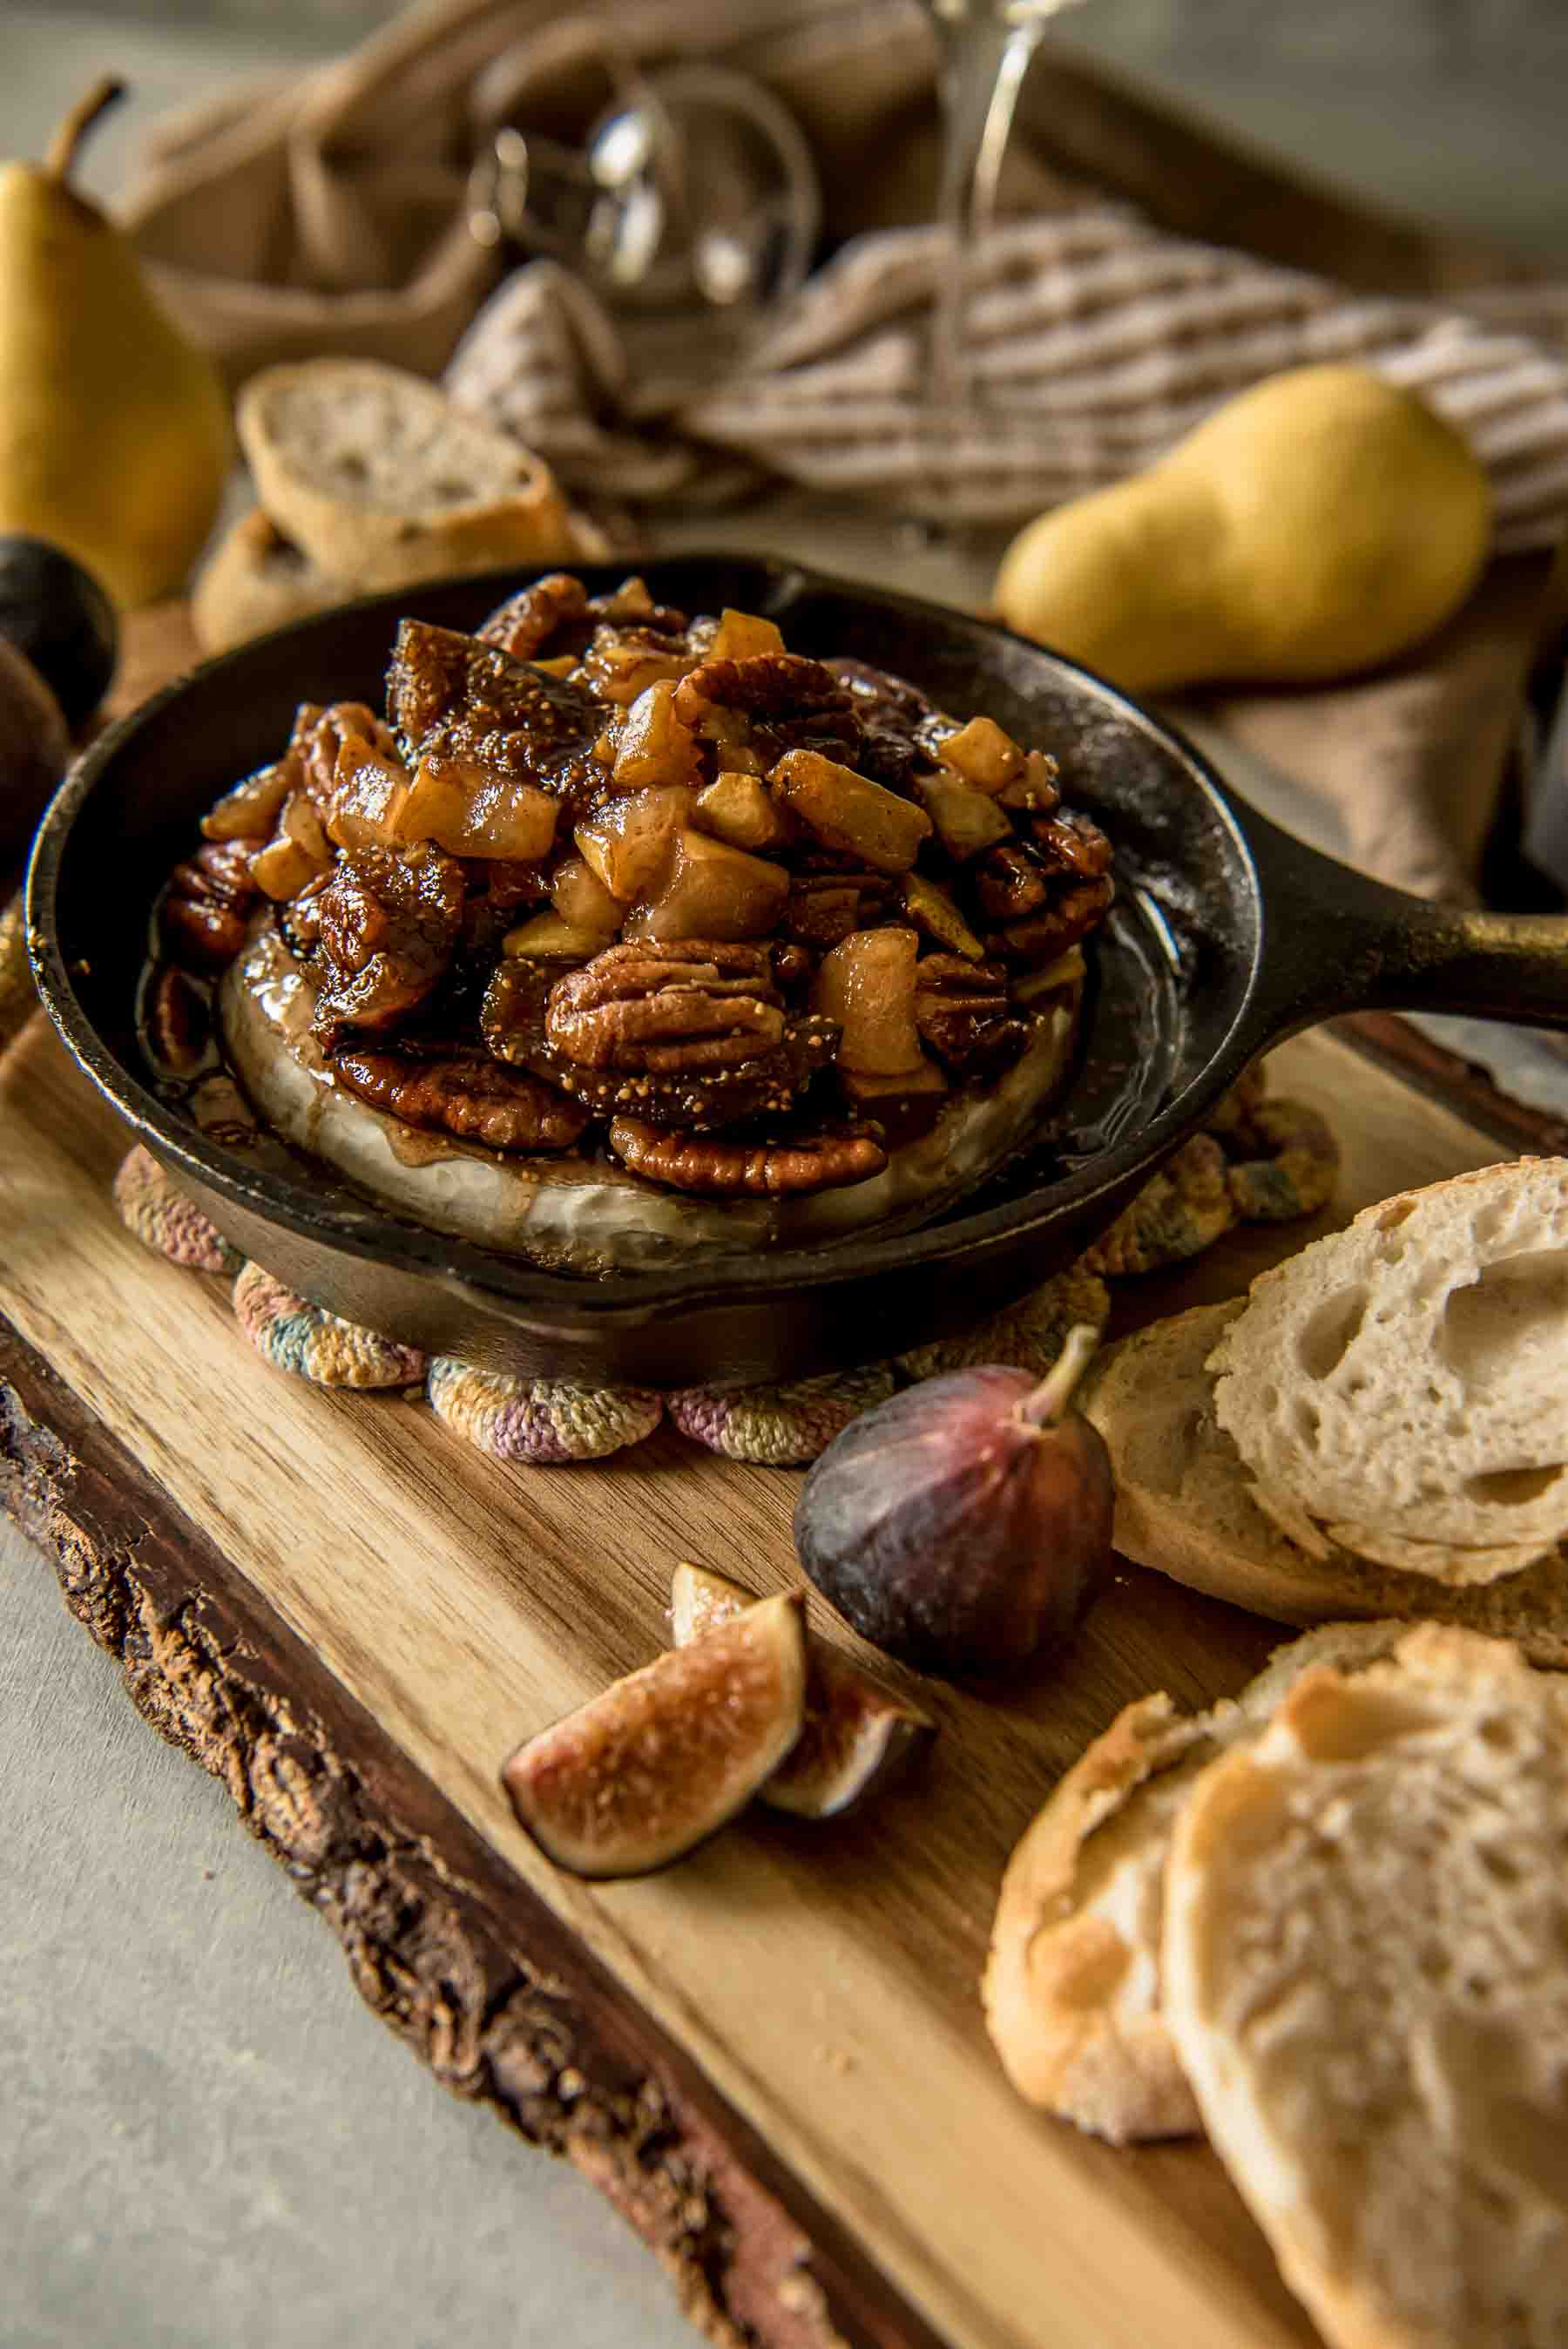 This creamy Brown Butter Fig & Pear Baked Brie is both elegant and comforting, and is sure to be the hit of any holiday or cold weather party! Figs, pears, pecans, and a little sweetness bring out the best in your favorite soft cheese.